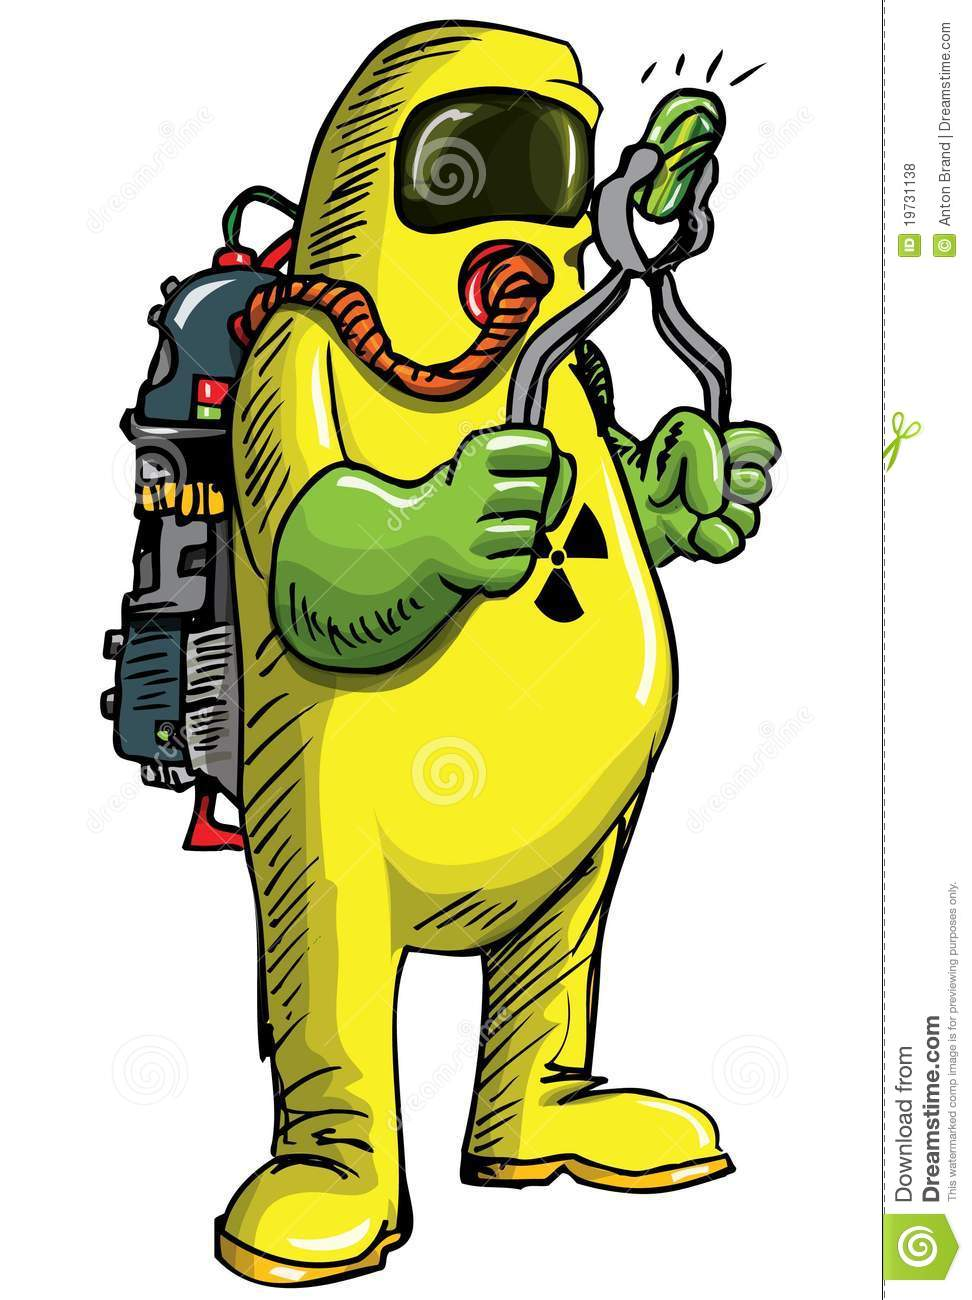 Man In Hazmat Suit Handeling Something Radioactive Royalty Free Stock